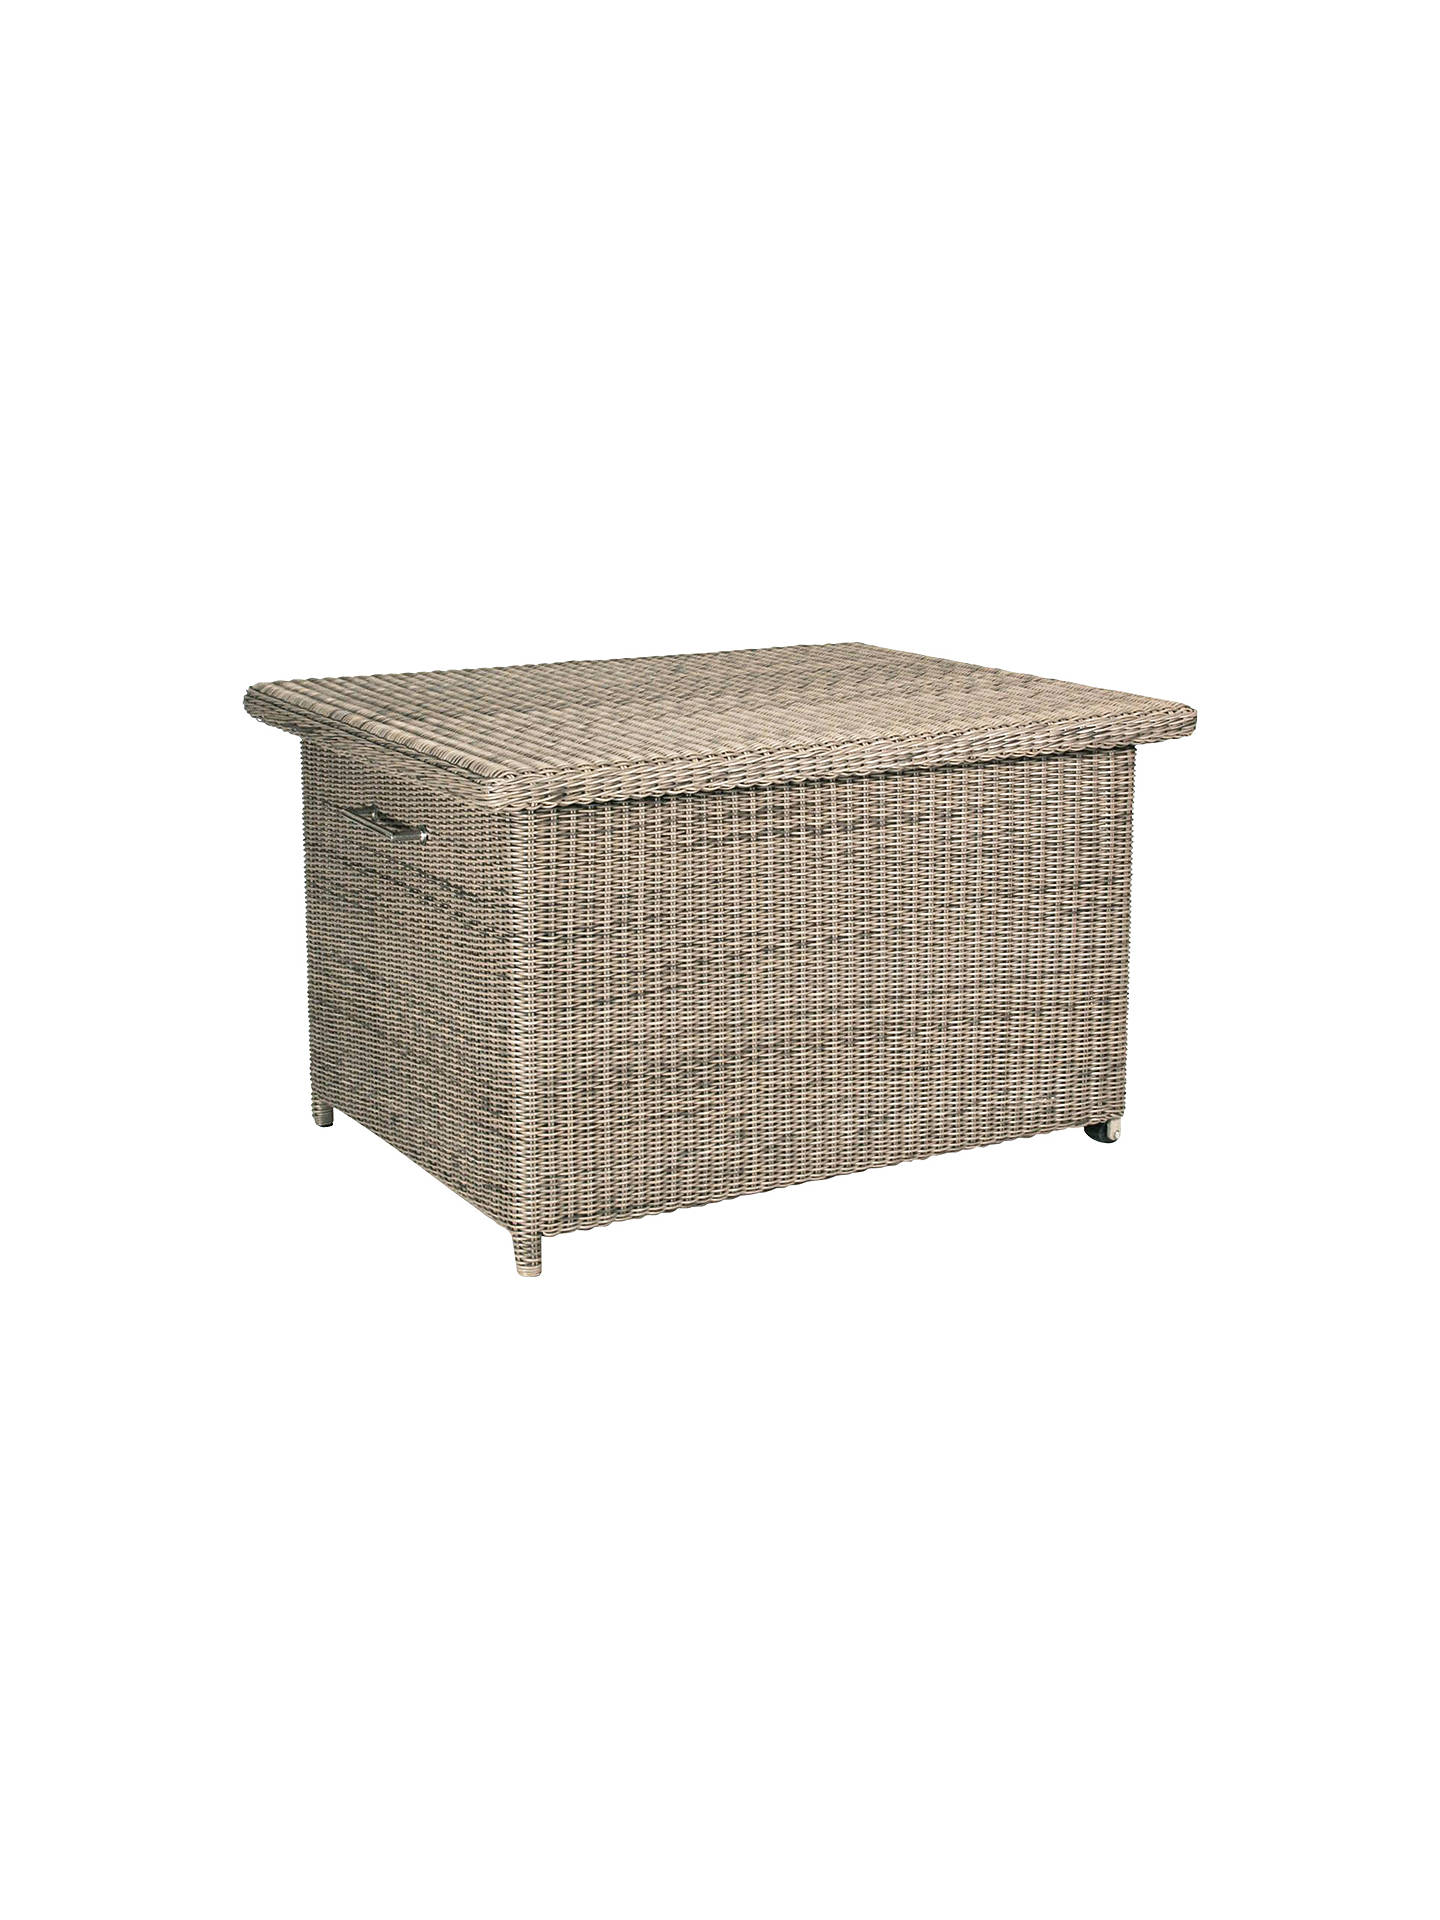 Buy4 Seasons Outdoor Valentine Woven Cushion Box Online at johnlewis.com